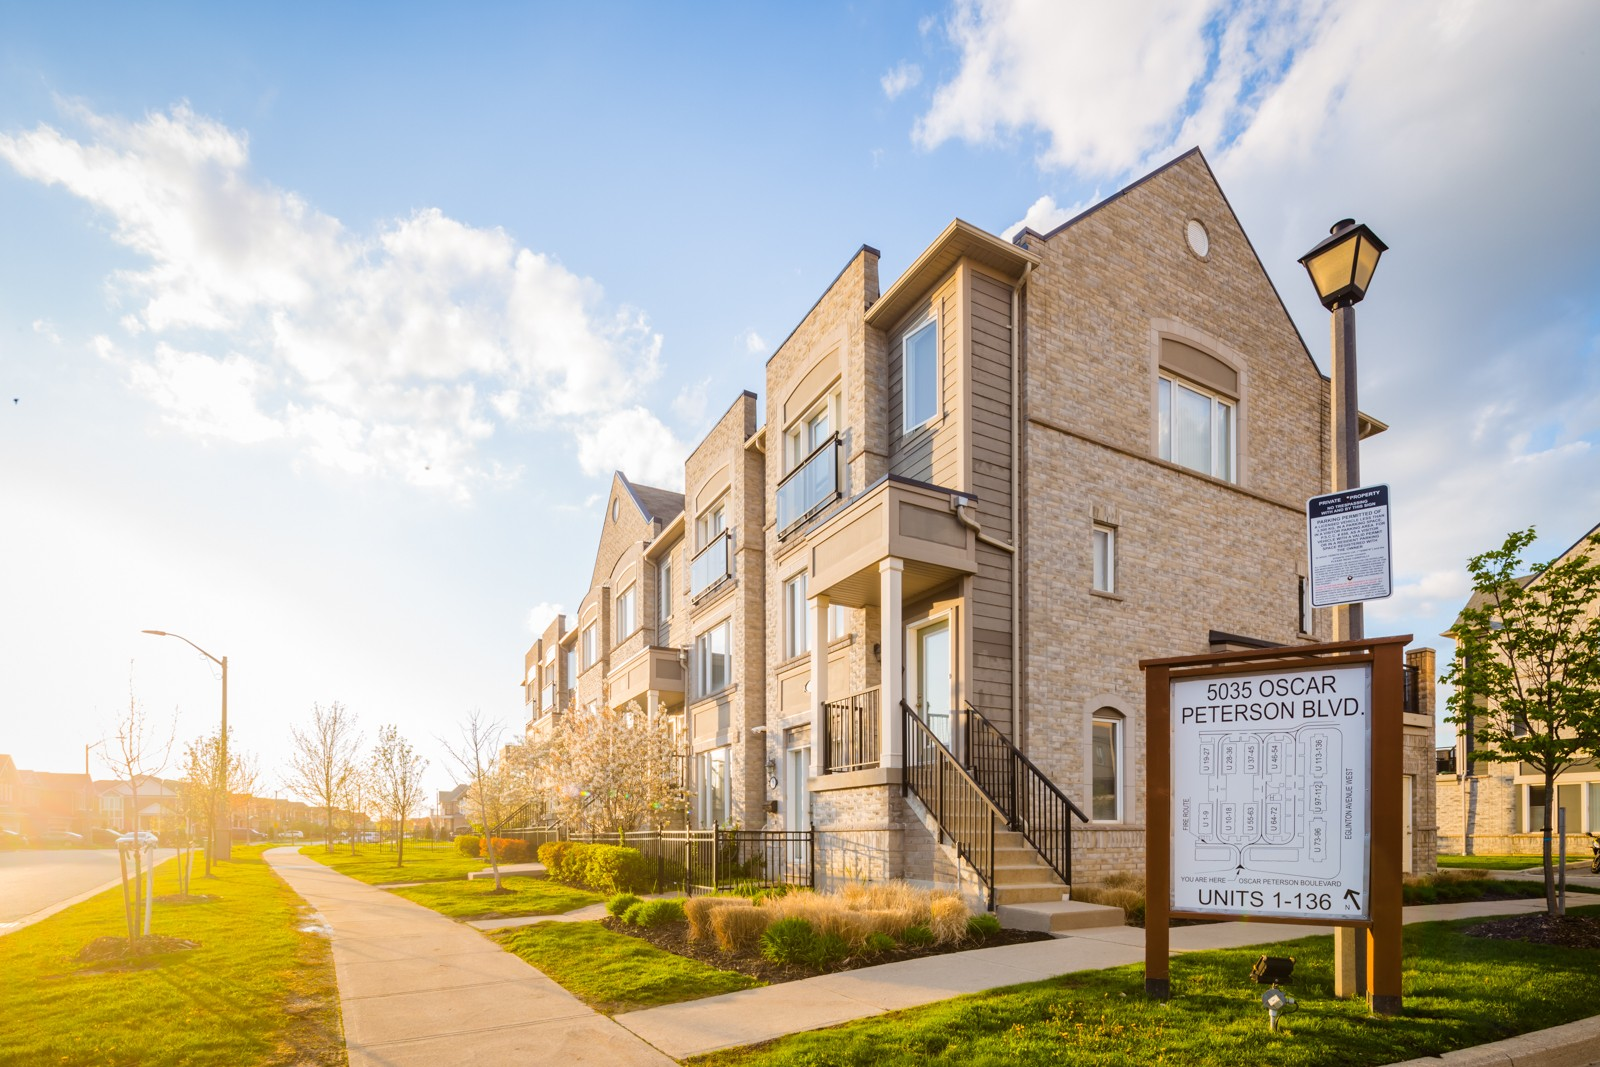 5035 Oscar Peterson Blvd Townhouses at 5035 Oscar Peterson Blvd, Mississauga 0